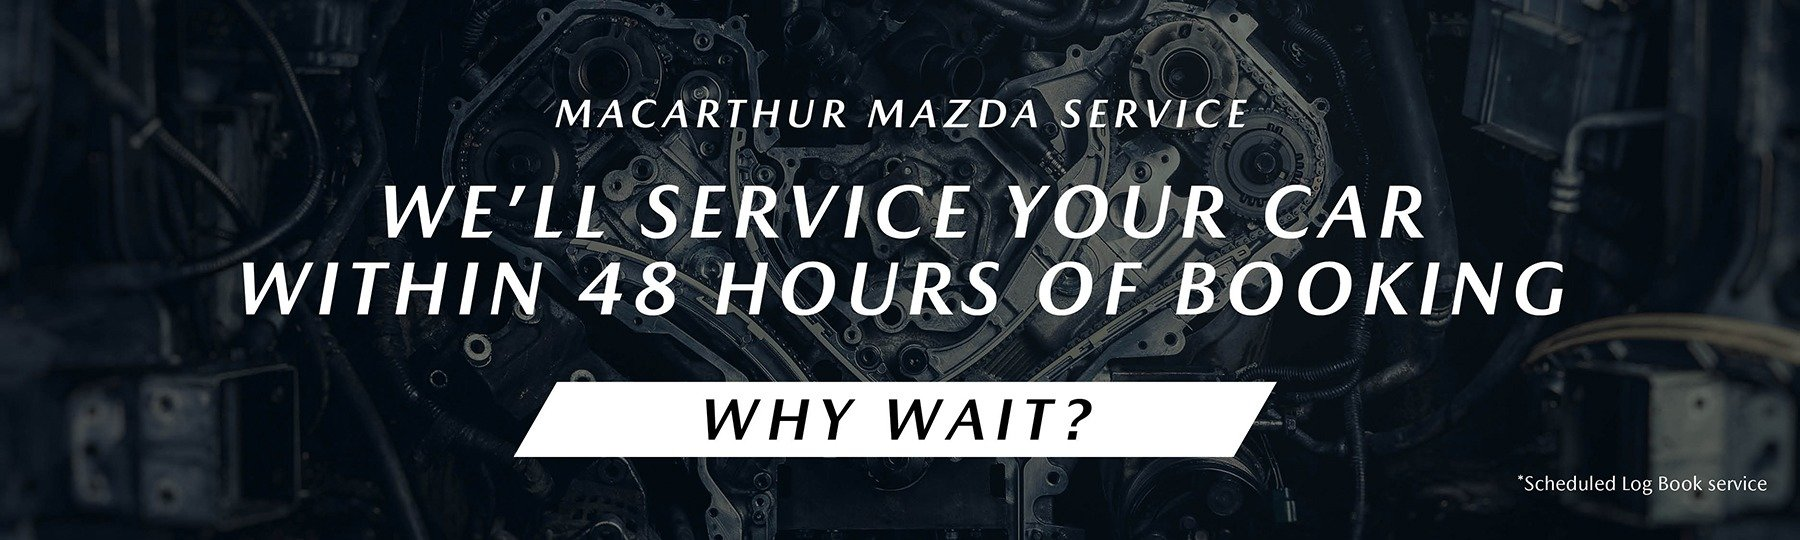 We'll Service Your Car In 48 Hours!